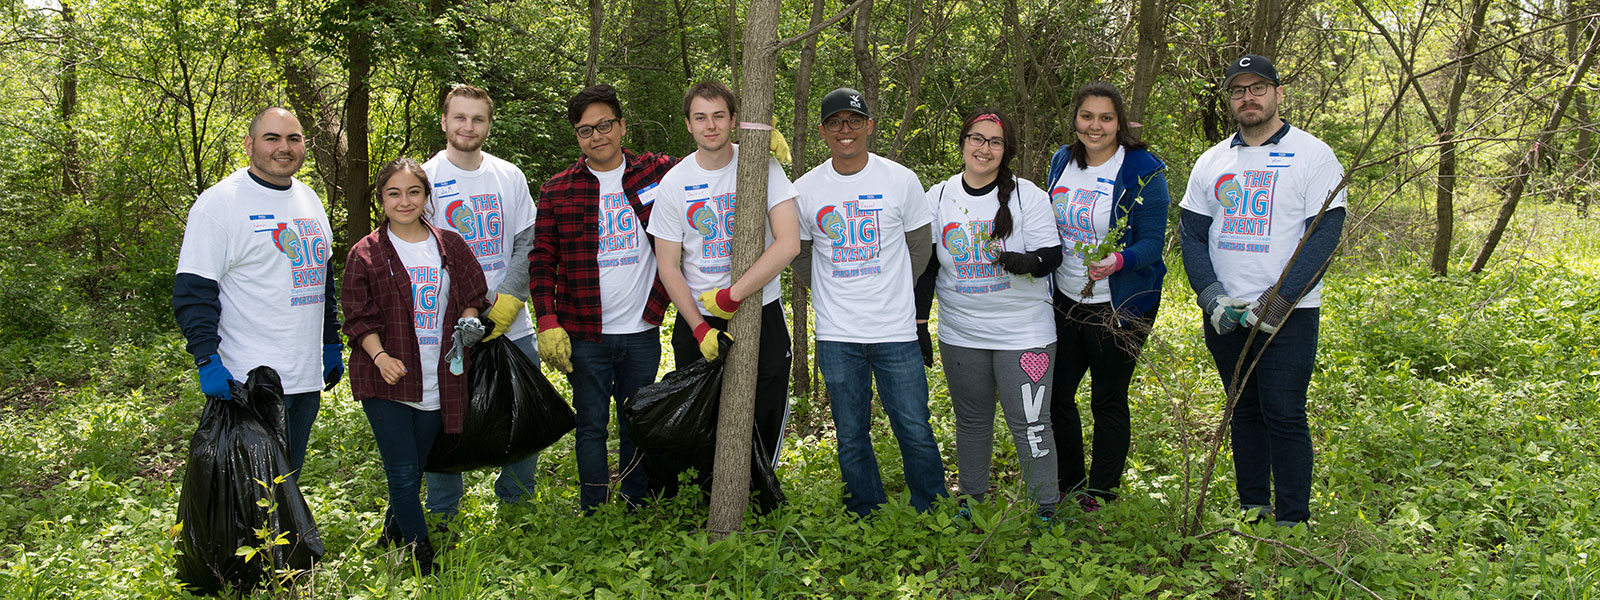 Students clean up a forest preserve during Student Life's annual volunteer day.